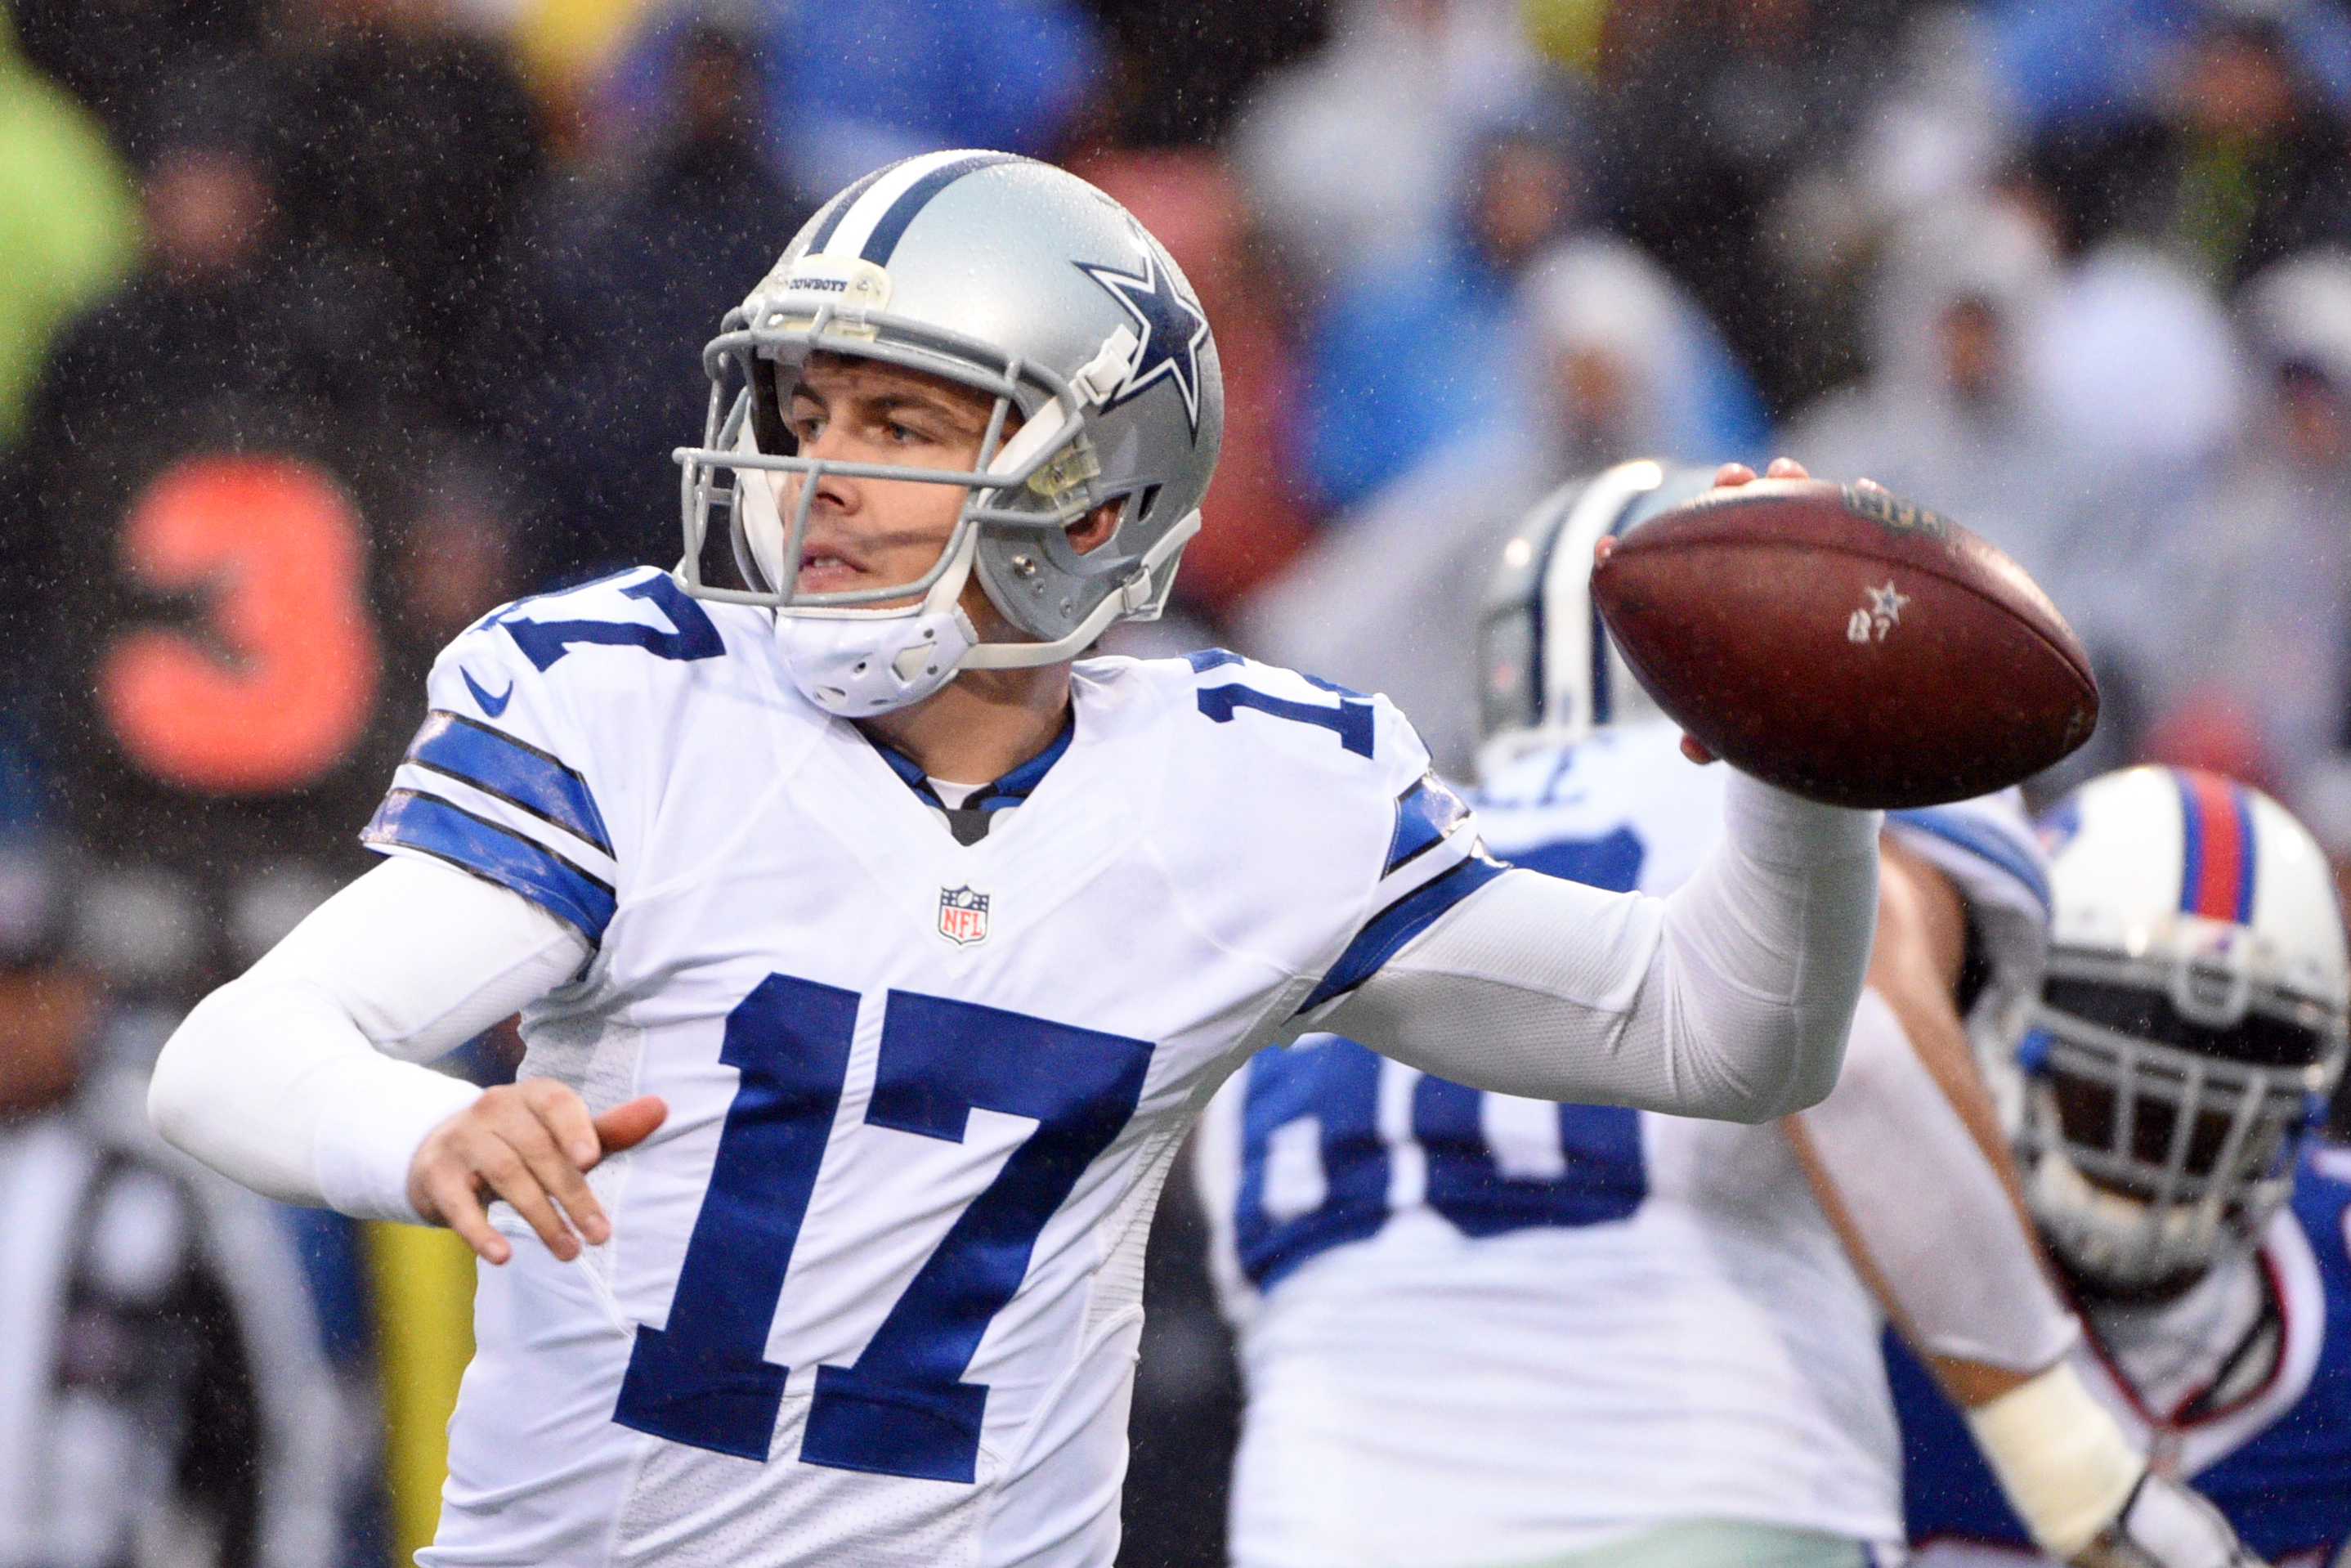 FILE - In this Dec. 27, 2015, file photo, Dallas Cowboys quarterback Kellen Moore throws against the Buffalo Bills during the second half of an NFL football game in Orchard Park, N.Y. The Cowboys take on the Washington Redskins on Sunday. (AP Photo/Gary W